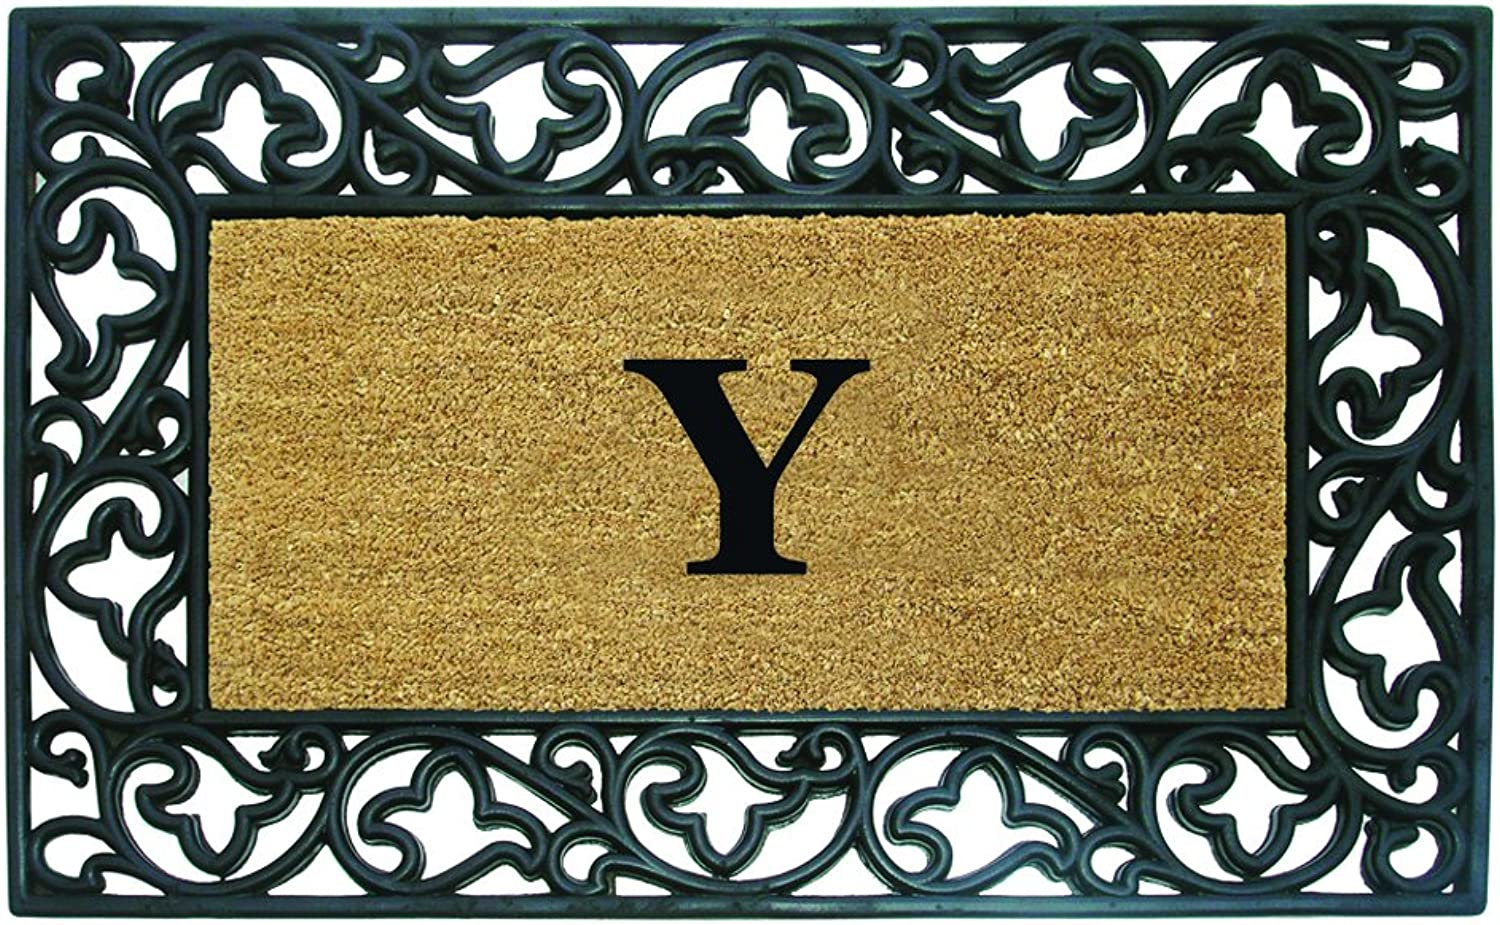 Nedia Home Acanthus Border with Rubber Coir Doormat, 30 by 48-Inch, Monogrammed Y